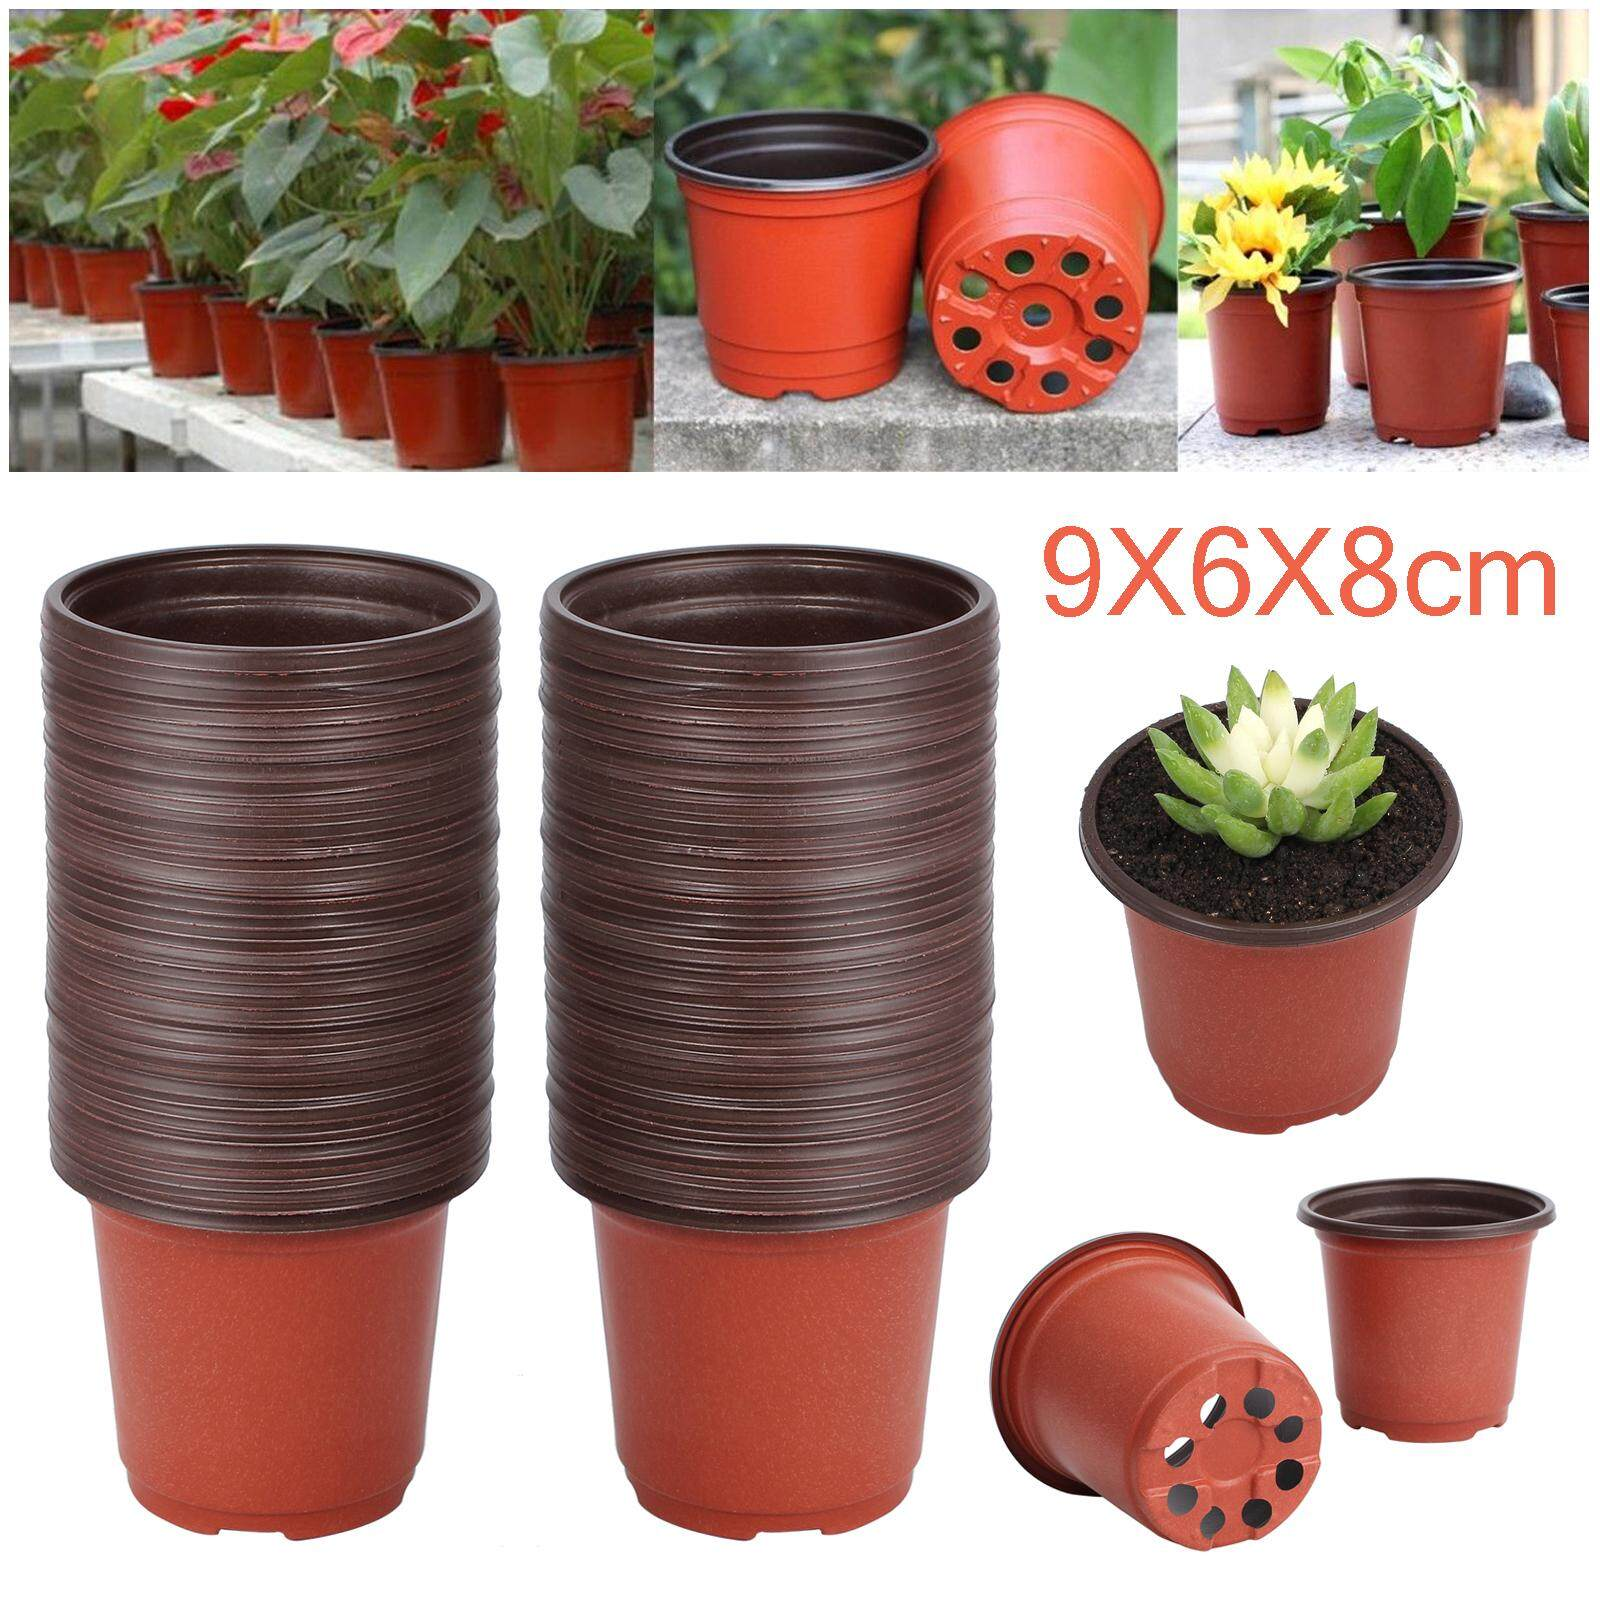 Home Pots Planters Urns Buy Home Pots Planters Urns At Best